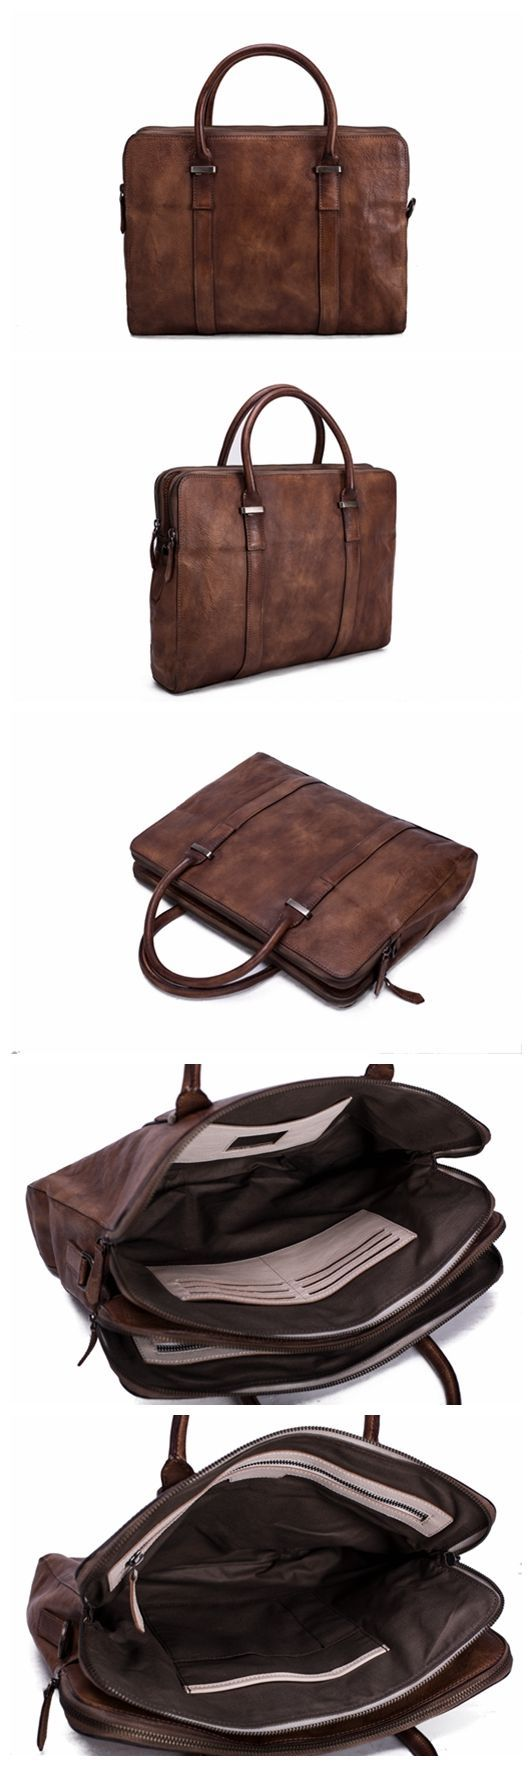 Vintage Vegetable Tanned Leather Briefcase, Men Messenger Bag, Laptop Bag - bags & purses, bag accessories, branded ladies bags sale *sponsored https://www.pinterest.com/bags_bag/ https://www.pinterest.com/explore/bags/ https://www.pinterest.com/bags_bag/leather-bags-for-men/ http://www.forever21.com/EU/Product/Category.aspx?br=F21&category=ACC_Handbags